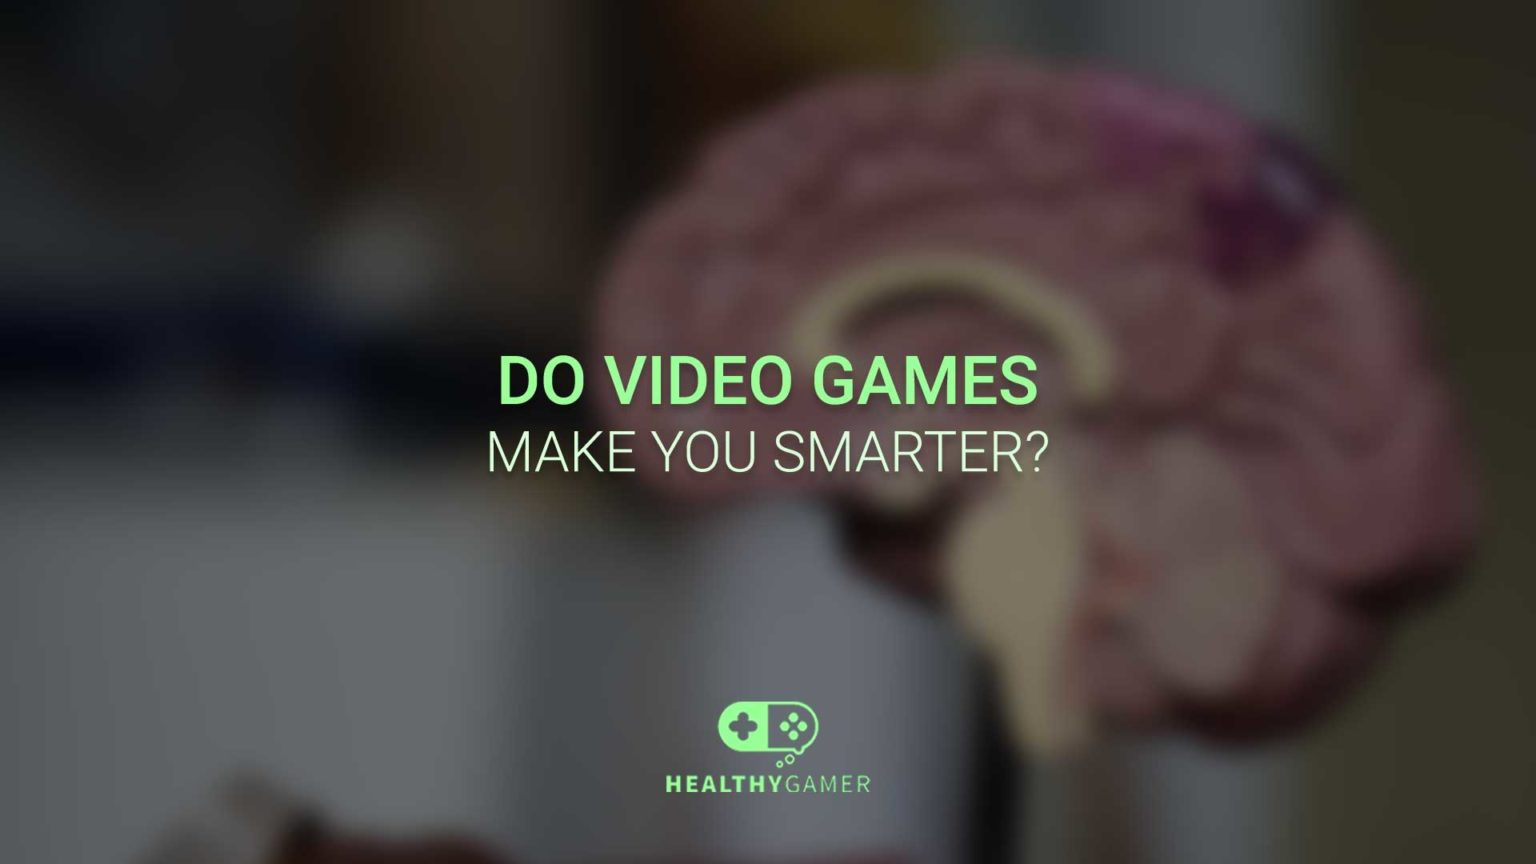 Video Games Make You Smarter: Backed up by Research